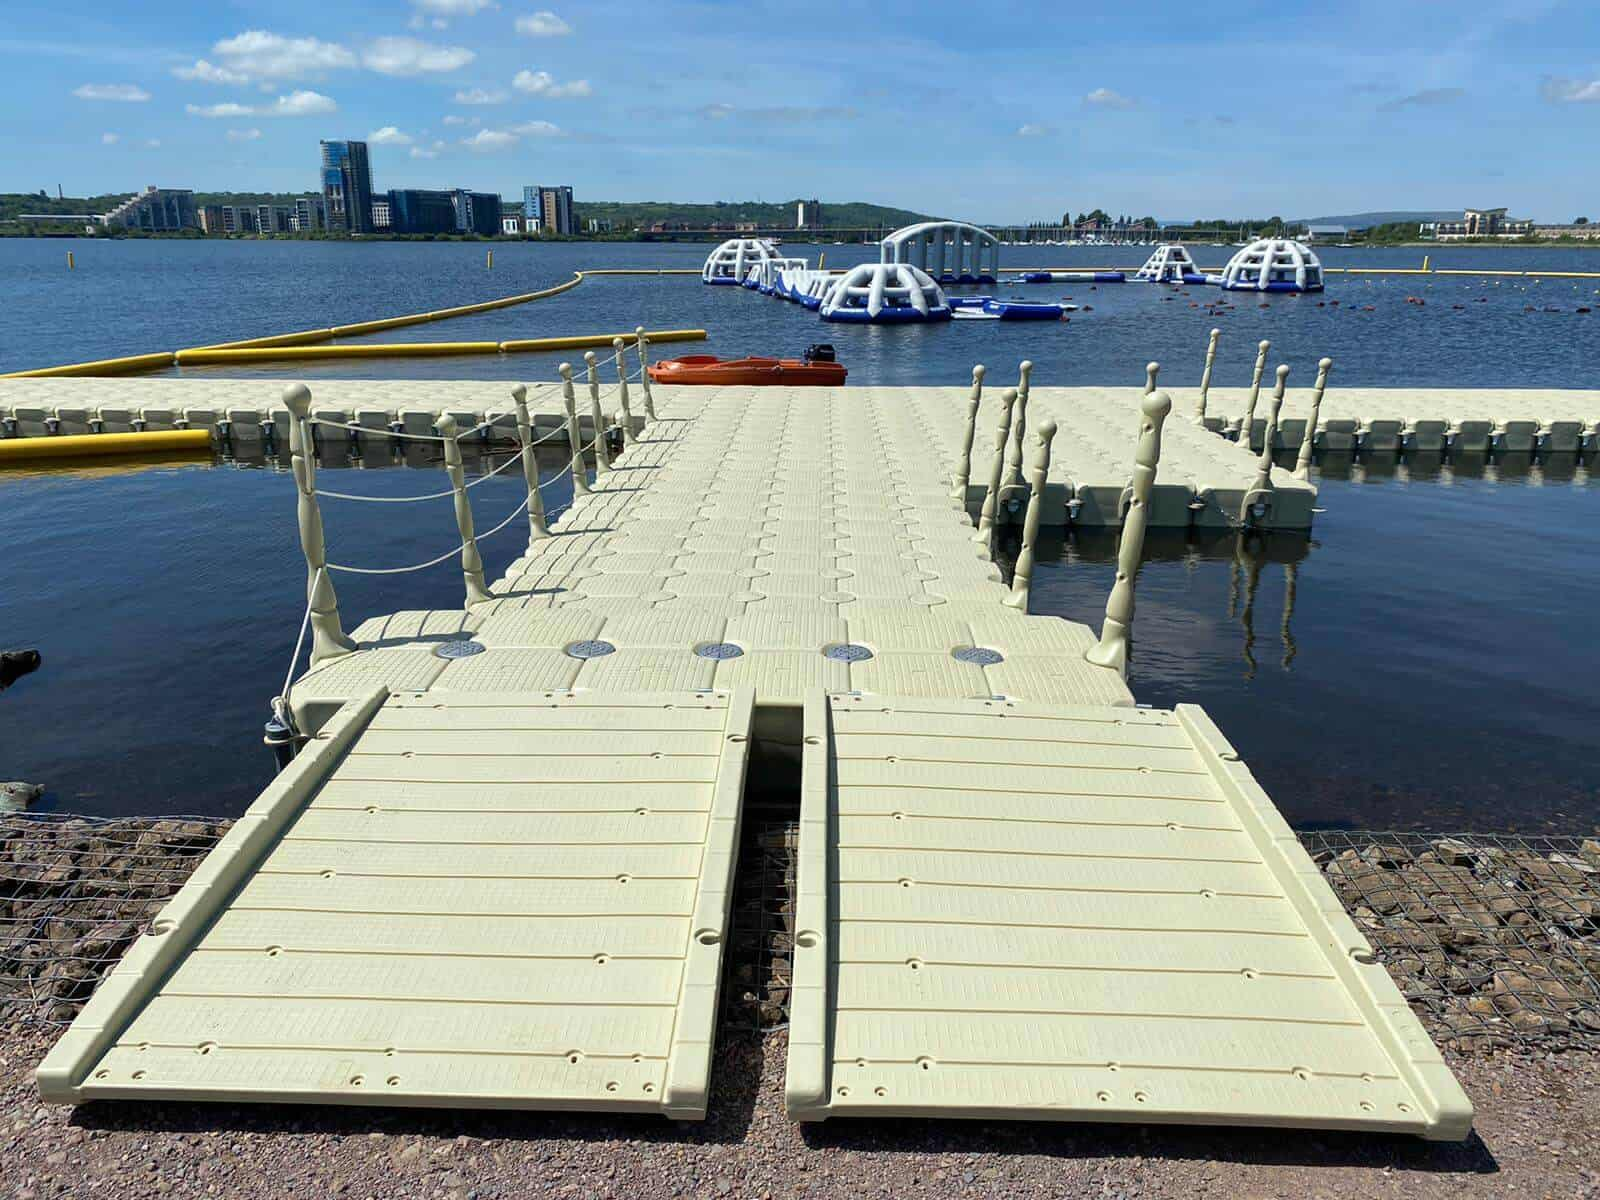 Modular cube pontoon with gangway, handrails and cleats Aquaparks, Cardiff